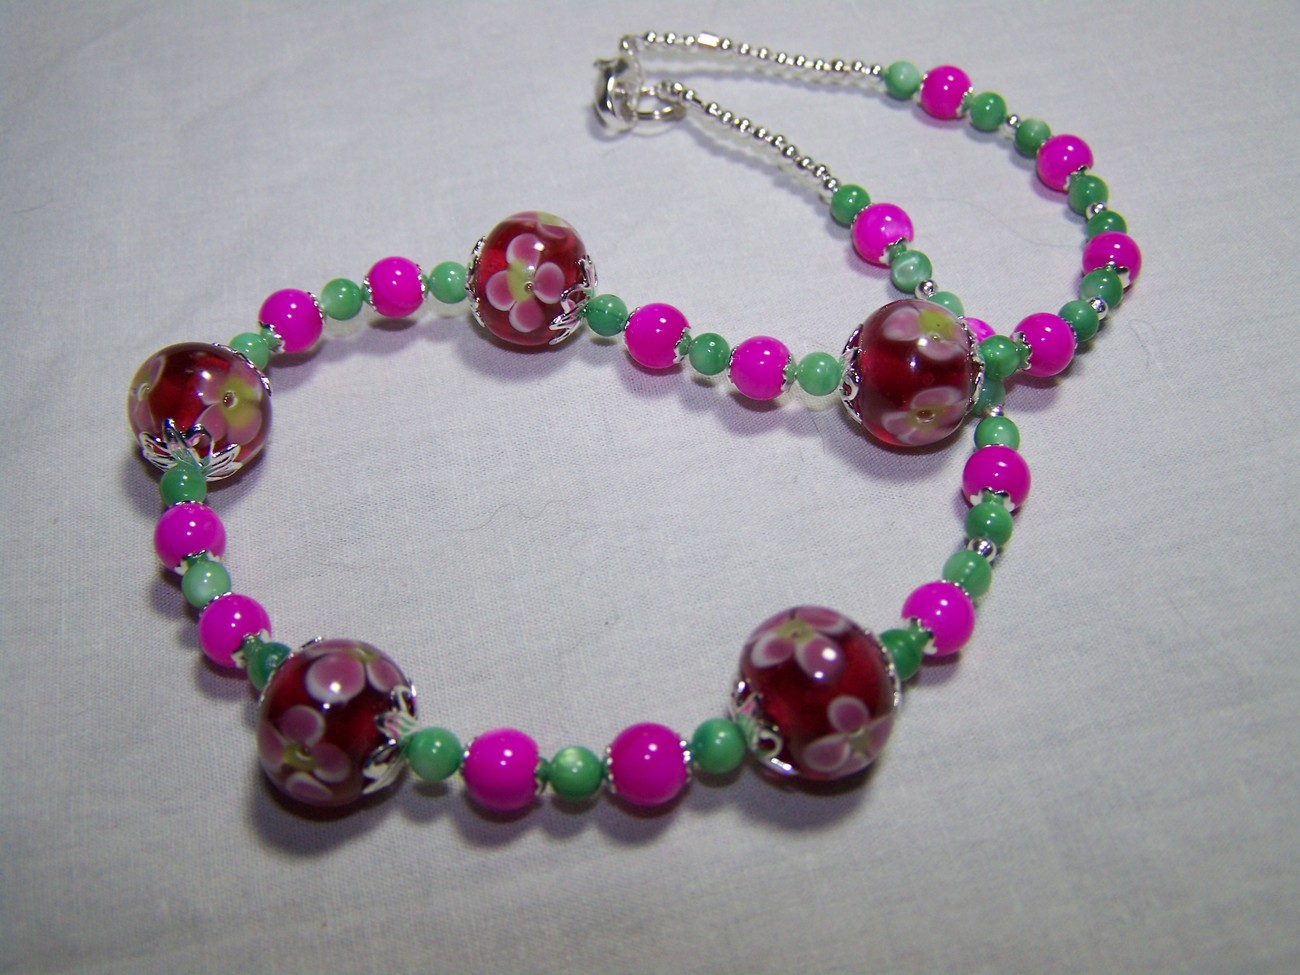 Pink green 15 1/4 inch flower lampwork and mop necklace